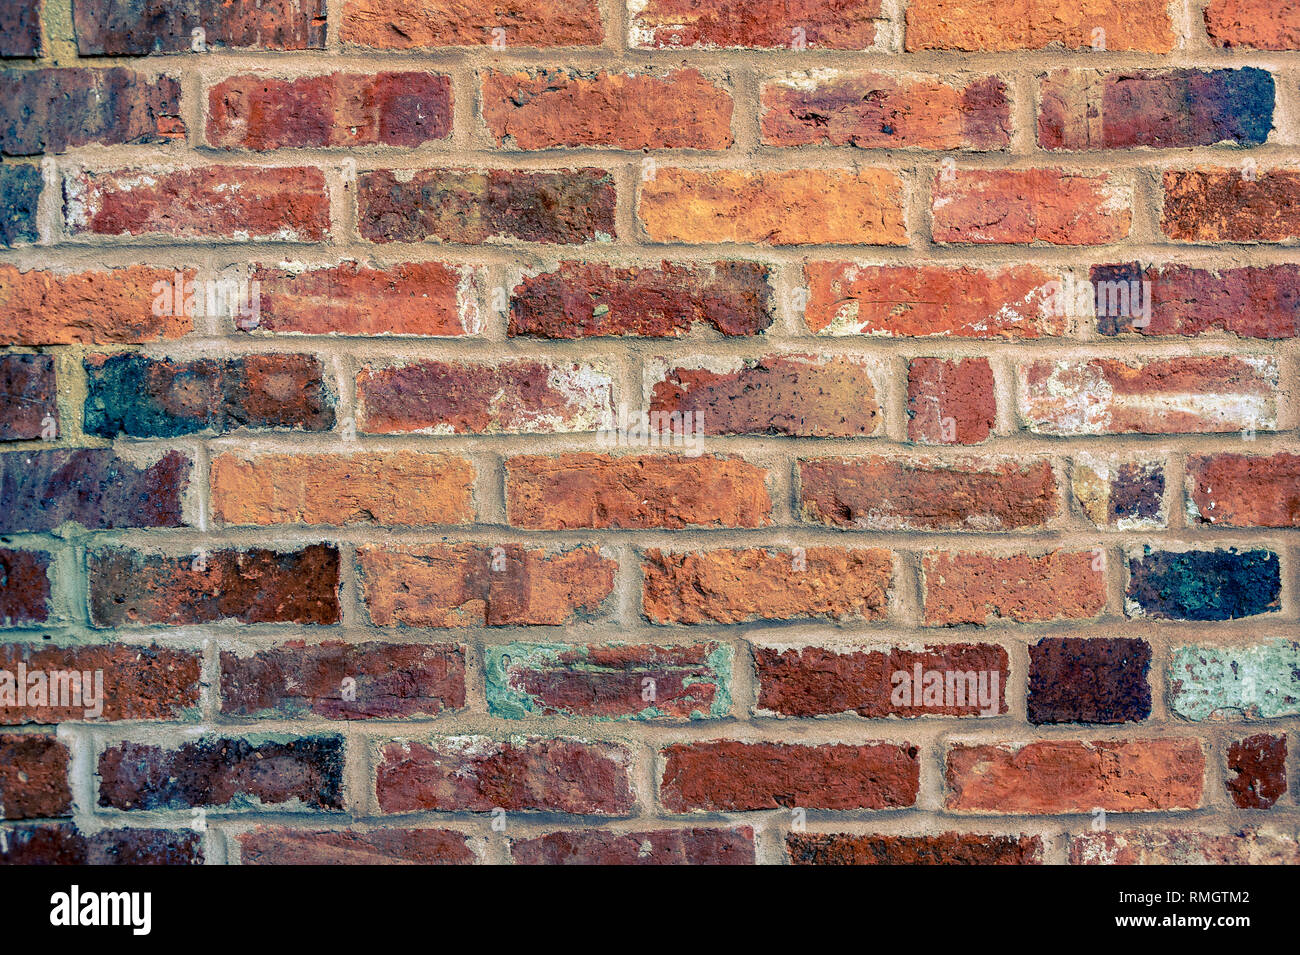 A brick wall built with old bricks which has been duo toned in yellow and blue - Stock Image